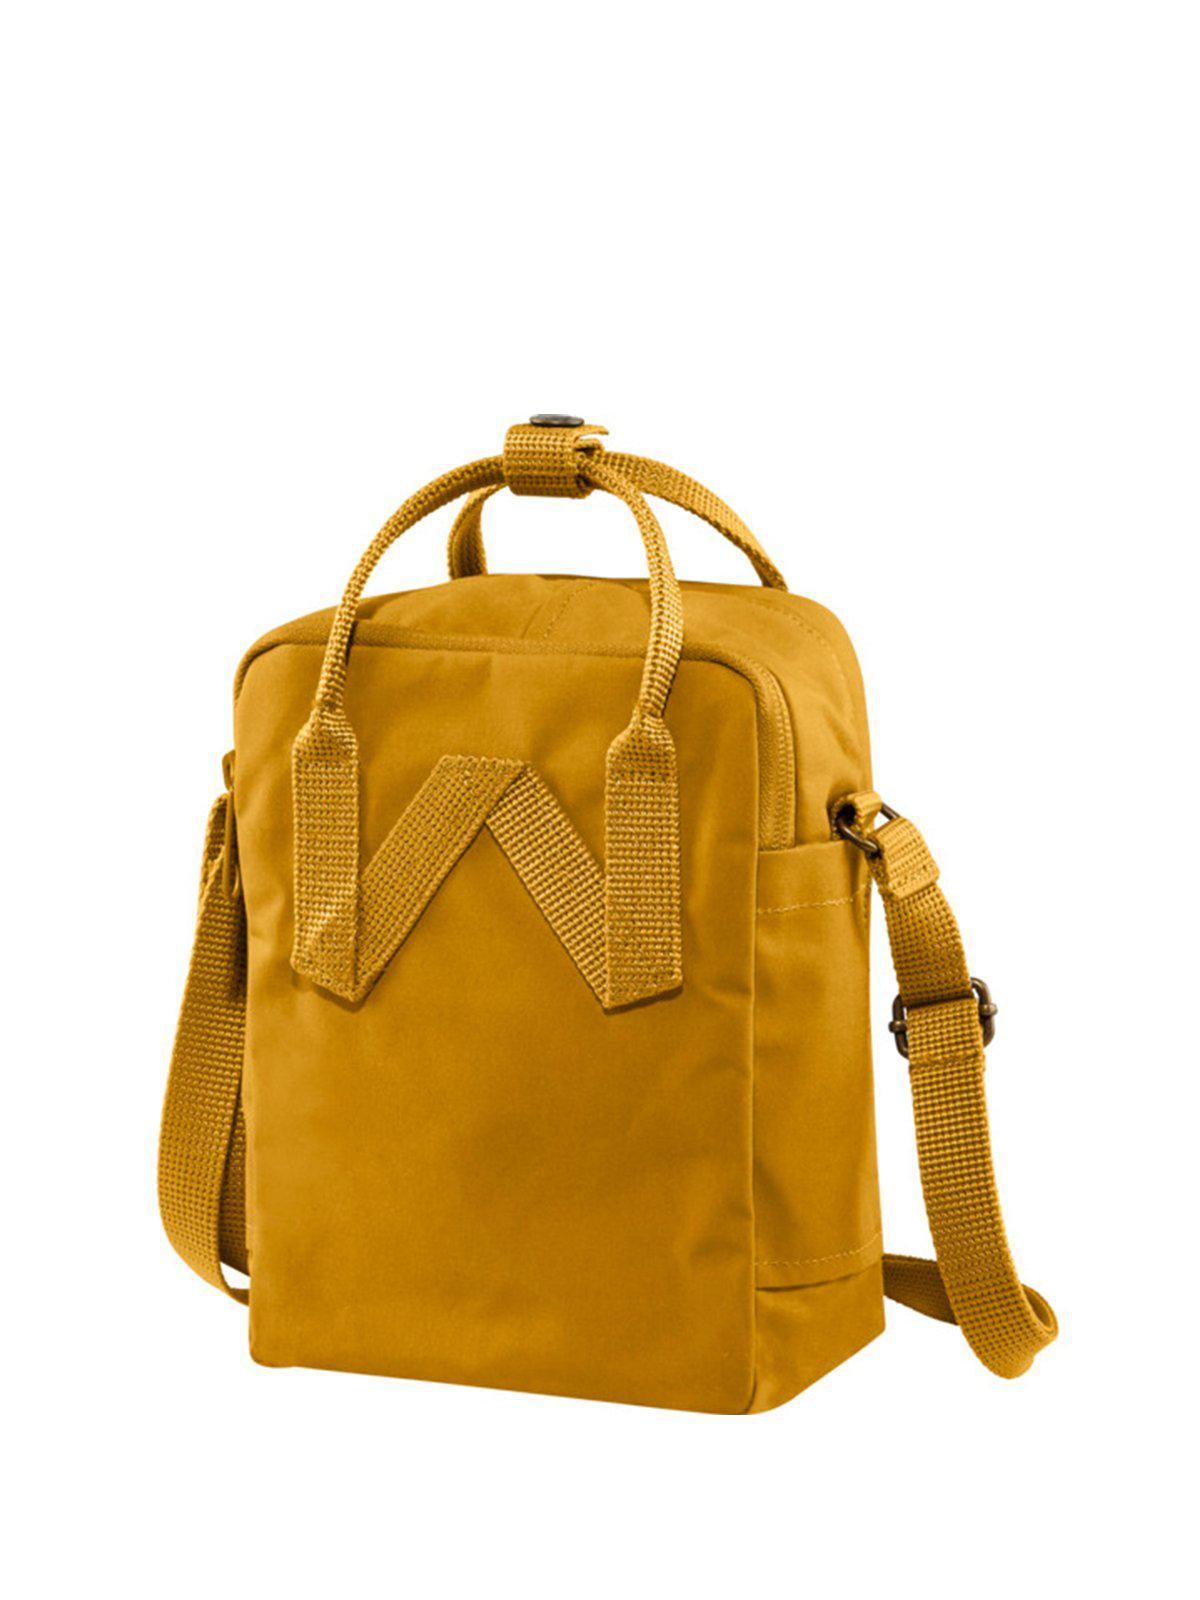 Fjallraven Kanken Sling Bag Ochre - MORE by Morello Indonesia